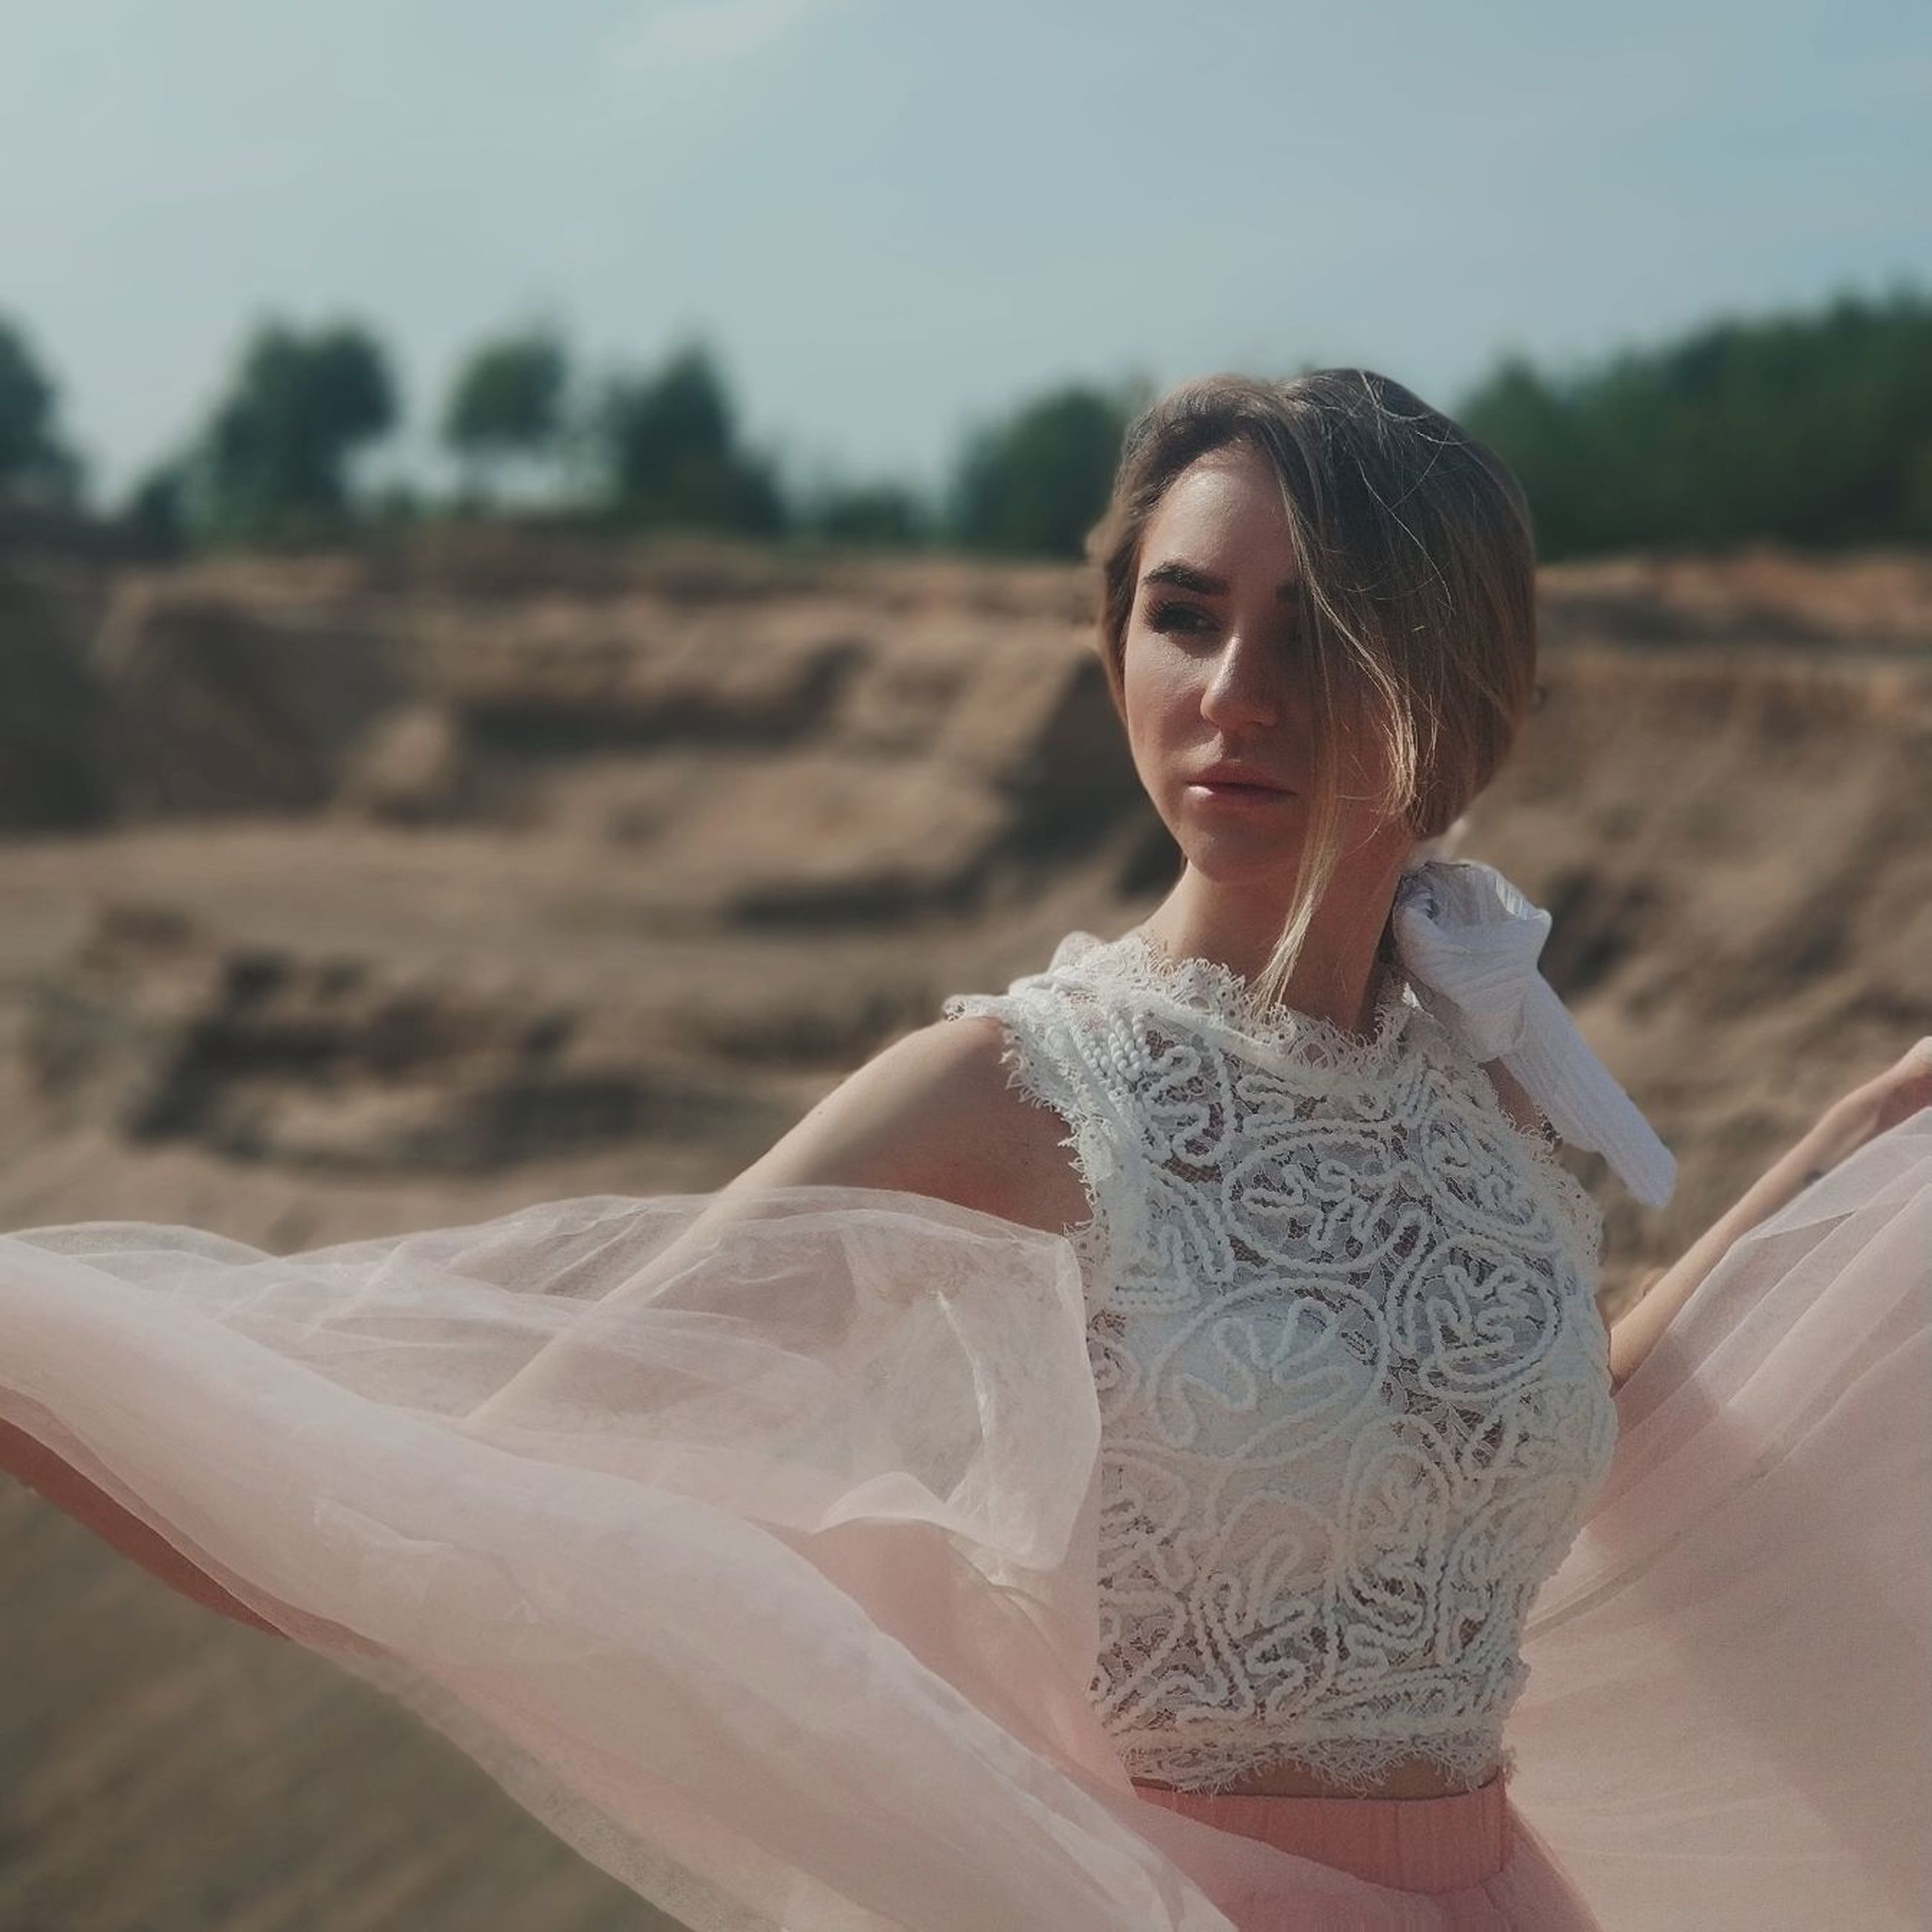 one person, young adult, beautiful woman, beauty, young women, real people, women, adult, leisure activity, lifestyles, land, focus on foreground, day, clothing, looking, sitting, nature, casual clothing, fashion, hairstyle, outdoors